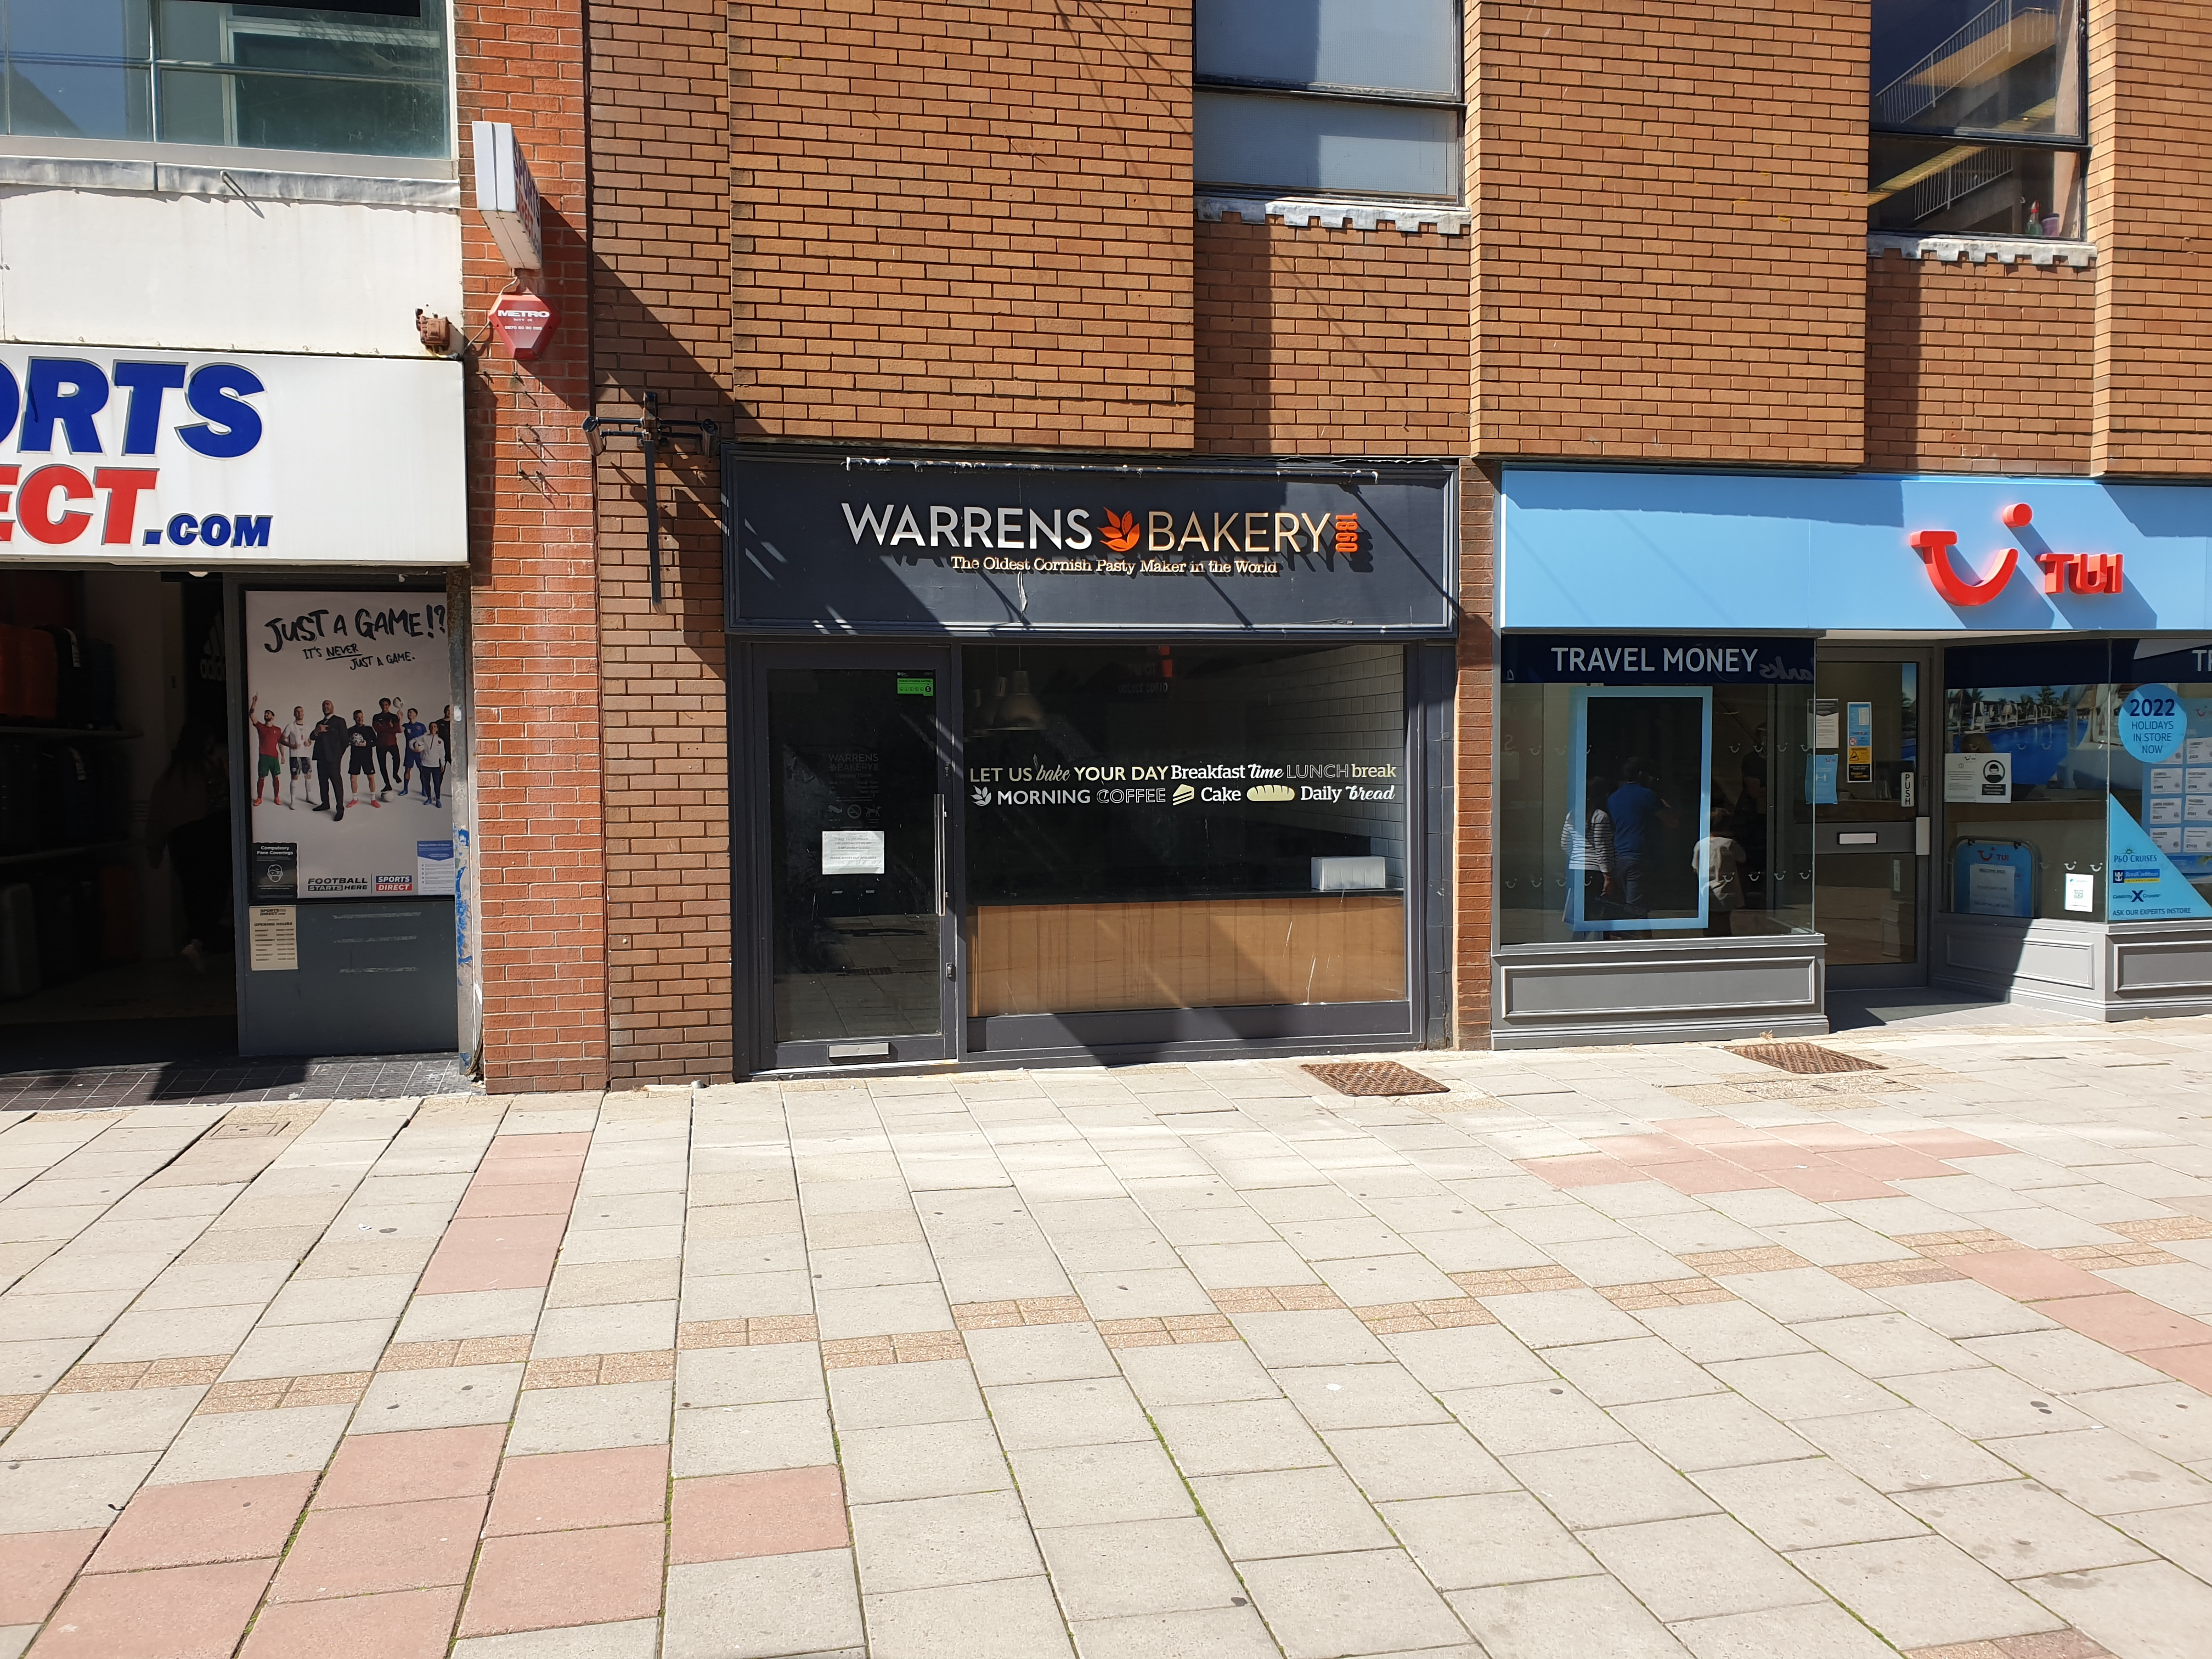 Image of 64, Montague Street, Worthing, West Sussex, BN11 3HE